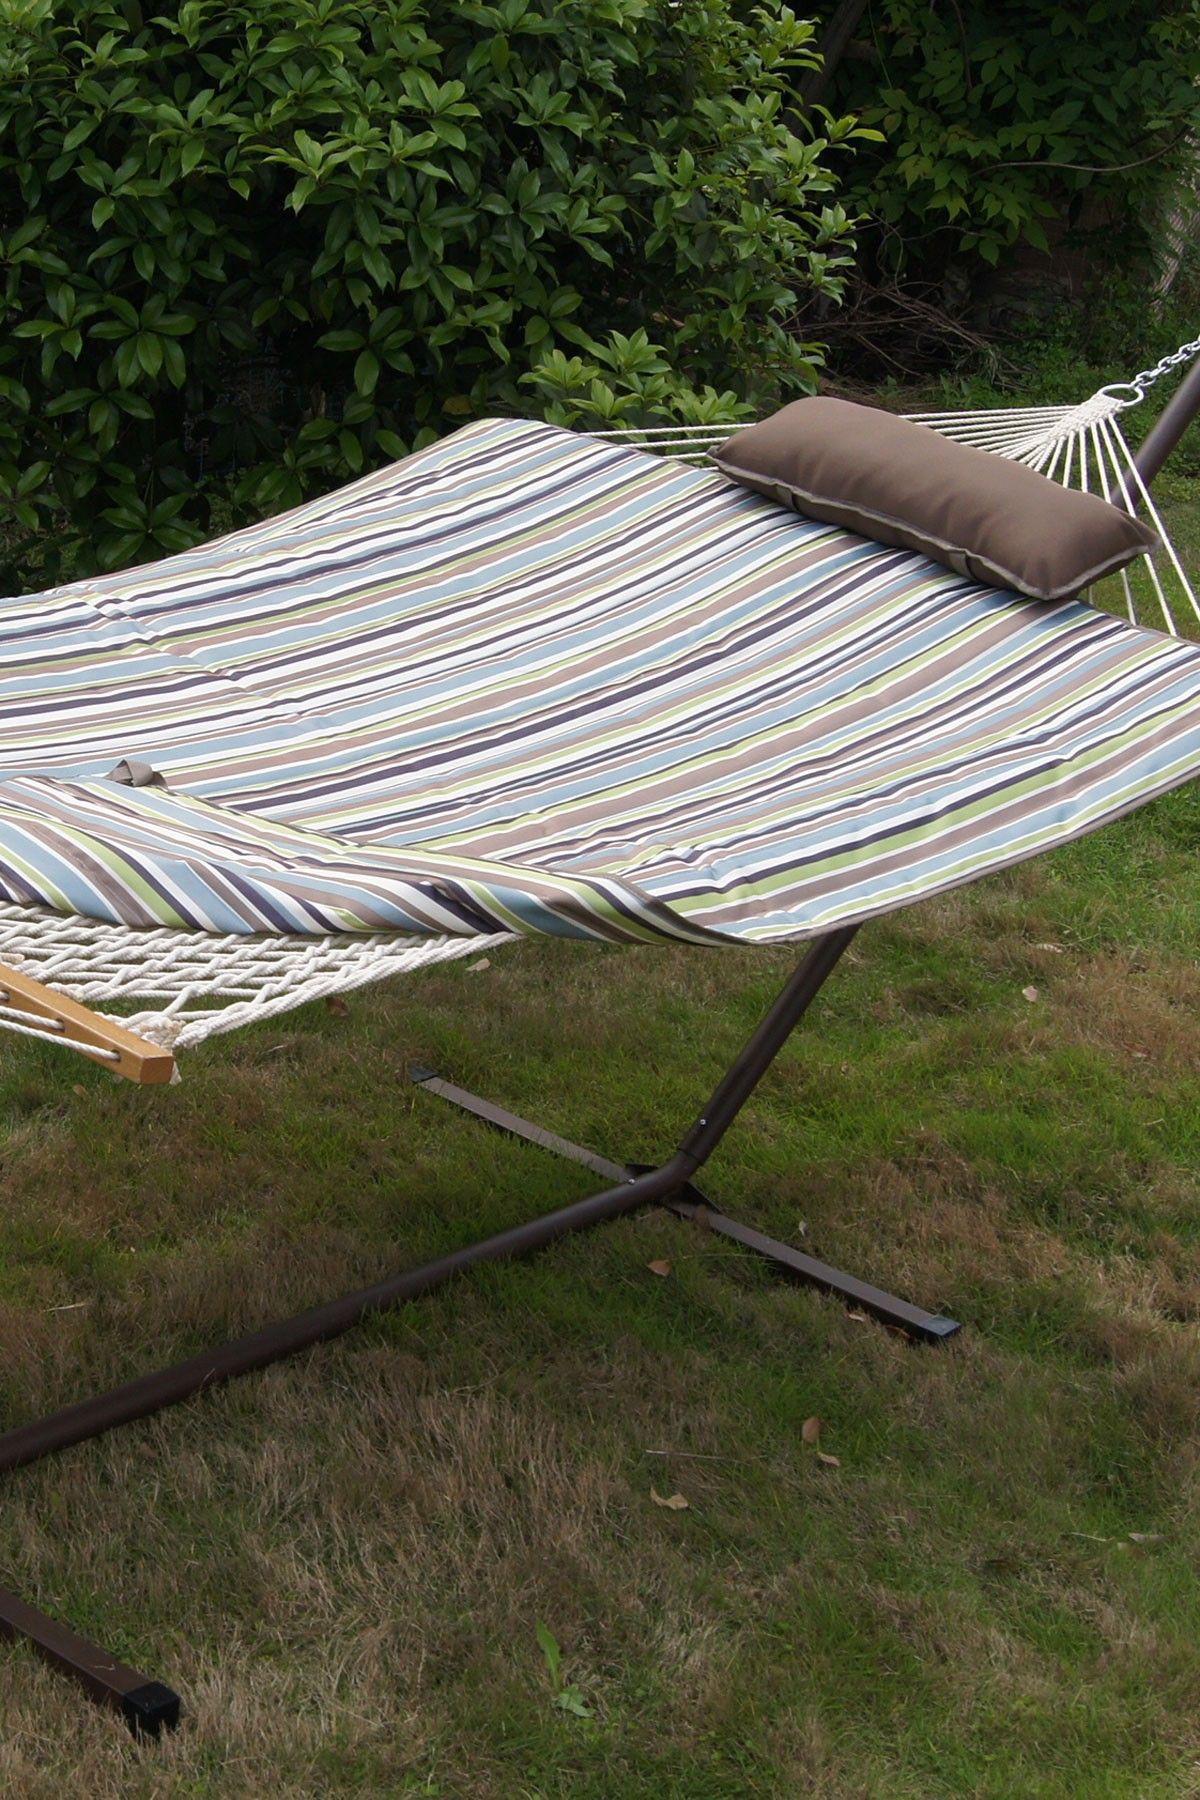 ft multi hammock u stand set with pad u pillow love itwant